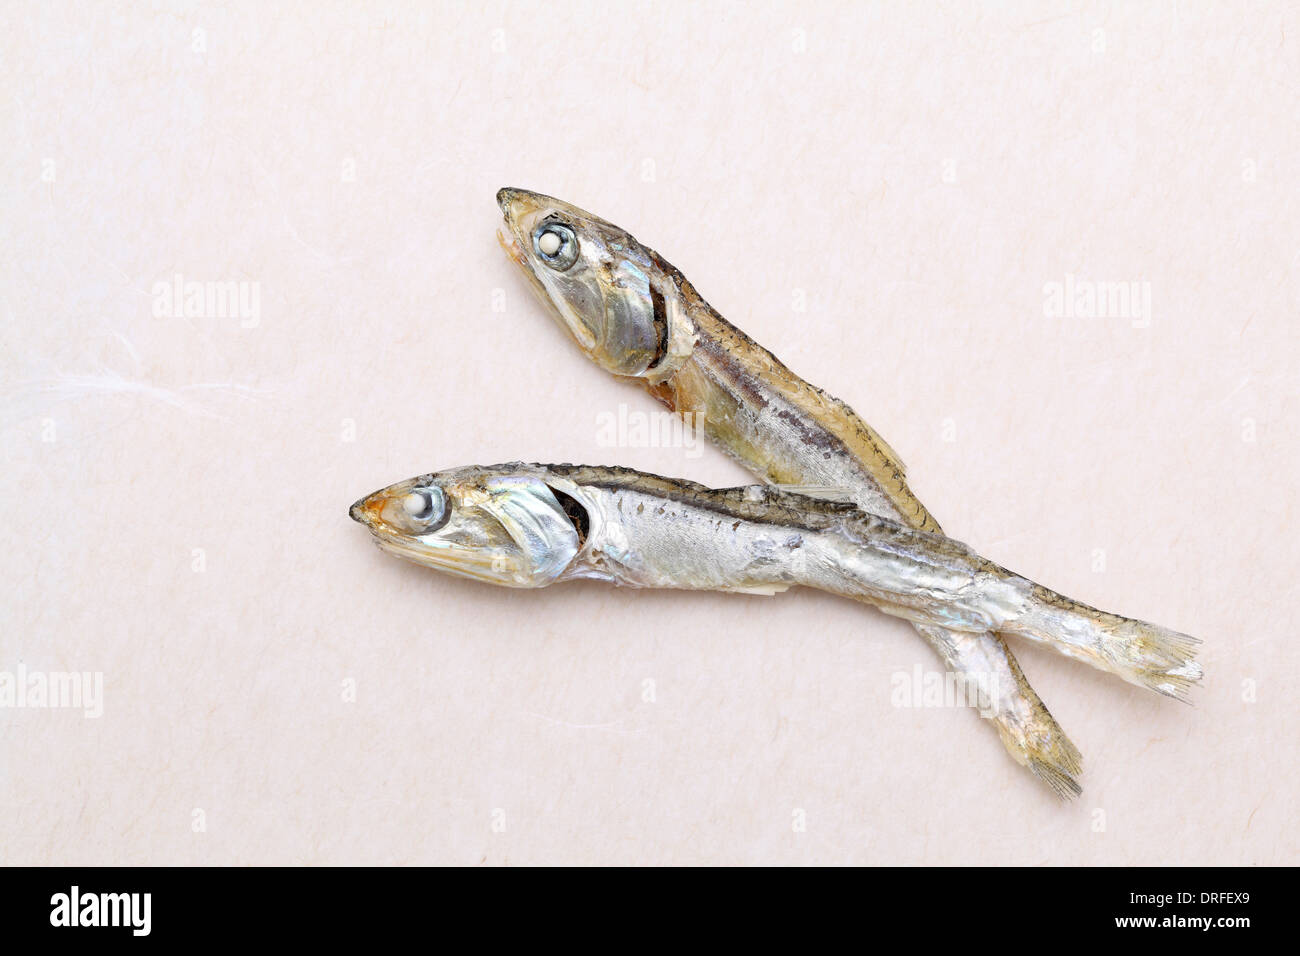 Dried small fish used in japanese cuisine, on japanese paper background - Stock Image